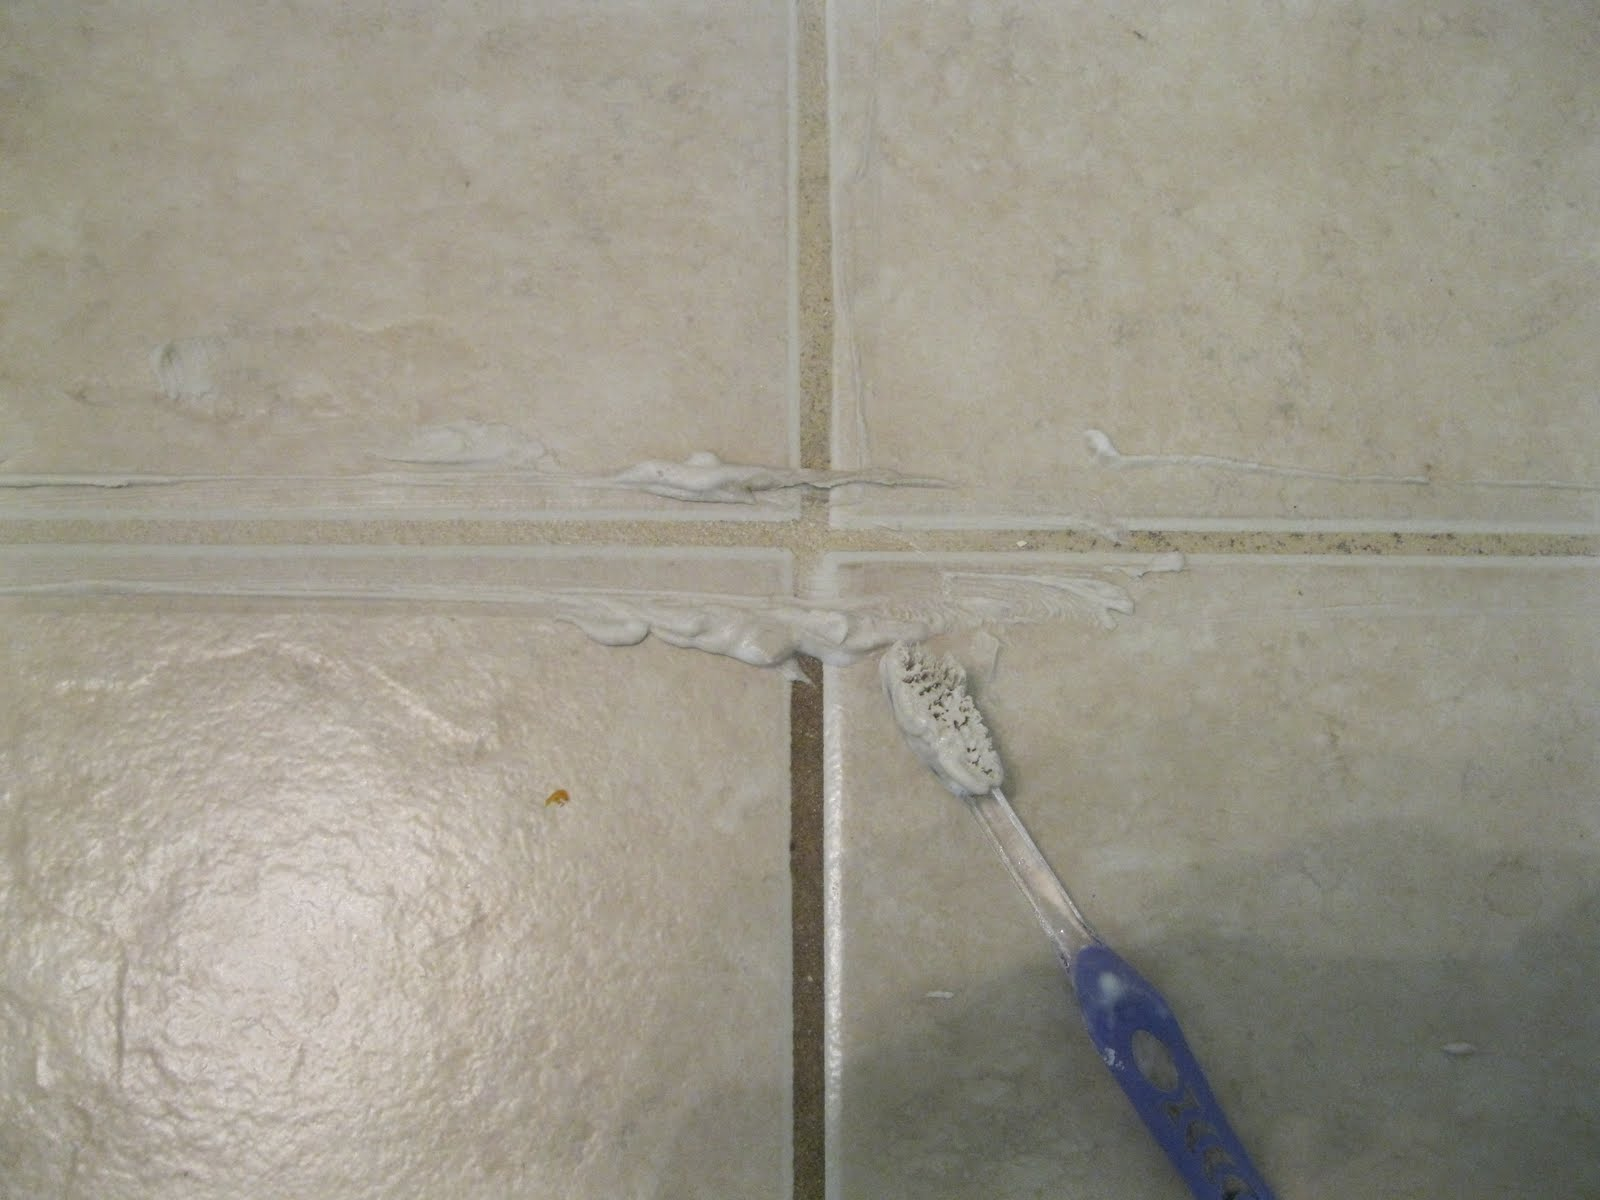 Generous Bathroom Shower Ideas Small Thin Bathroom Vanities Toronto Canada Clean Bath And Shower Enclosures Average Cost Of Refinishing Bathtub Youthful French Bathroom Wall Sign ColouredBathroom Renovations Virginia Beach Accessorize And Organize: DIY Homemade Grout Cleaner